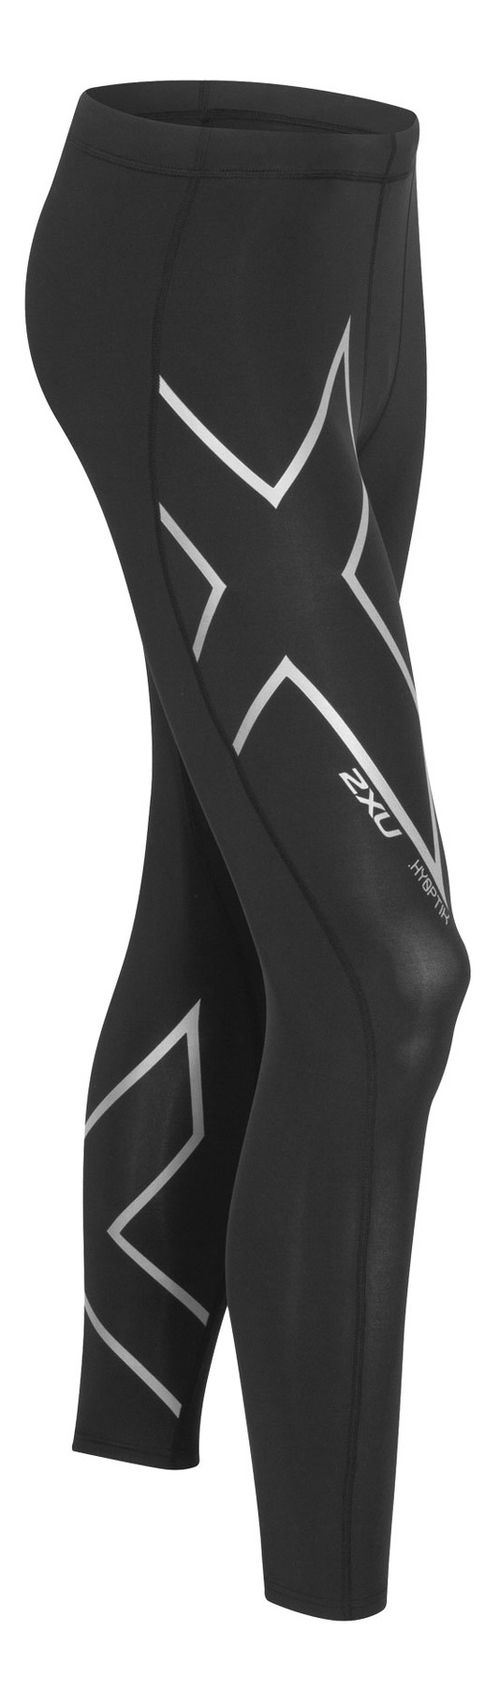 Mens 2XU Hyoptik Thermal Compression Full Length Tights - Black/Silver L